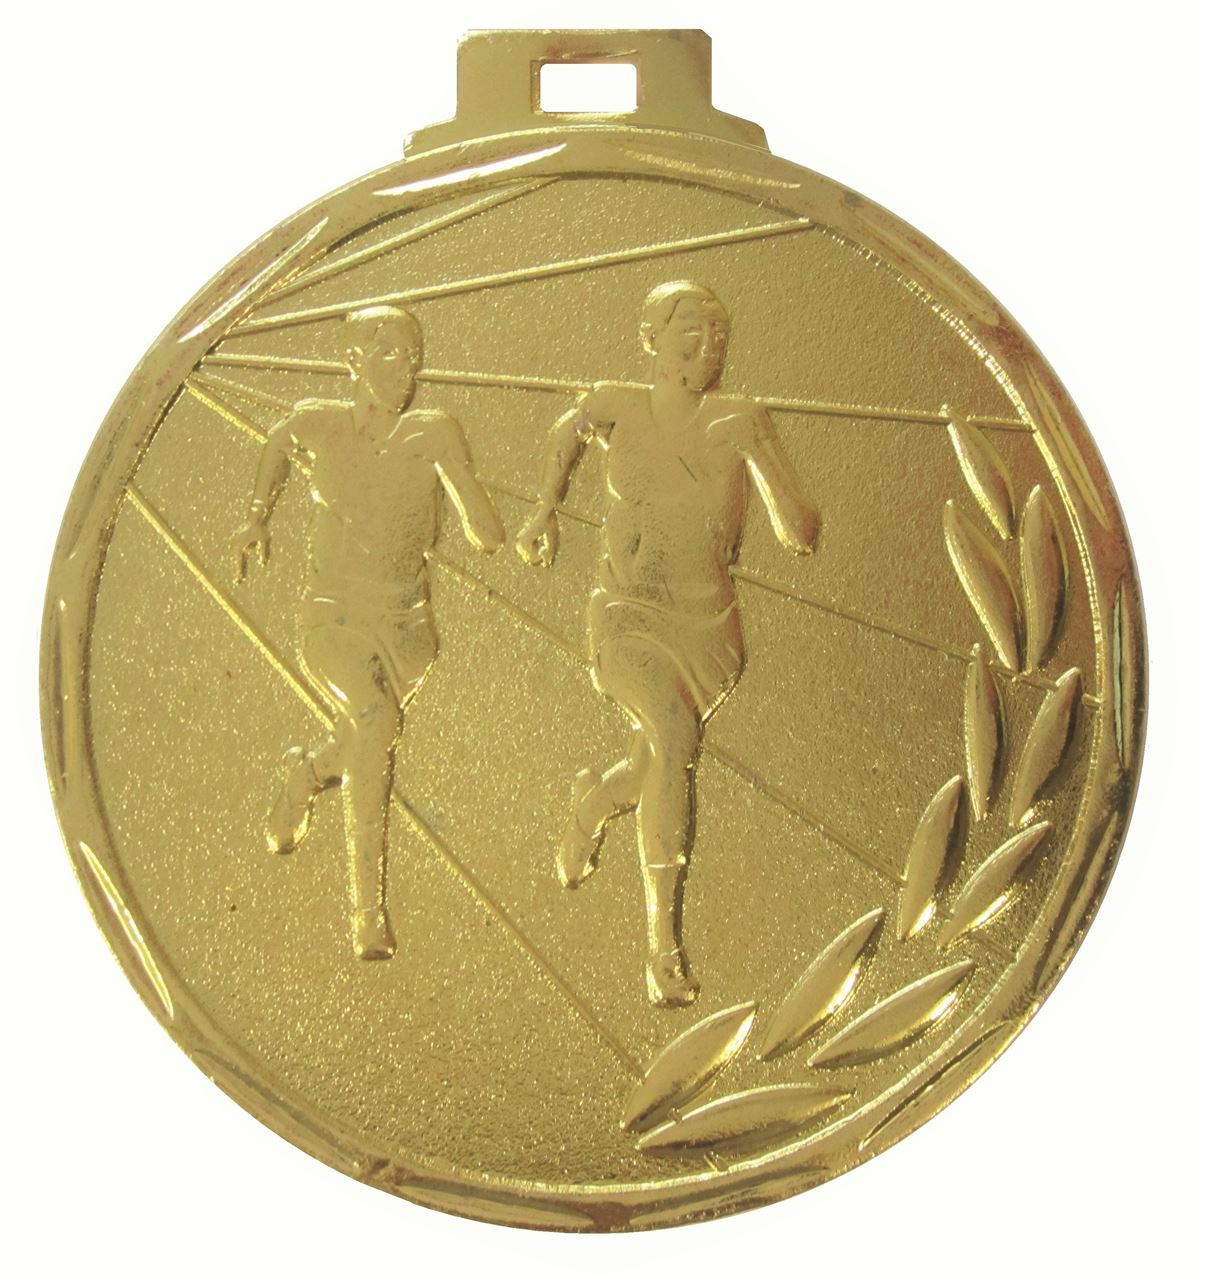 Gold Value Athletics Ray Medal (size: 50mm) - 7902